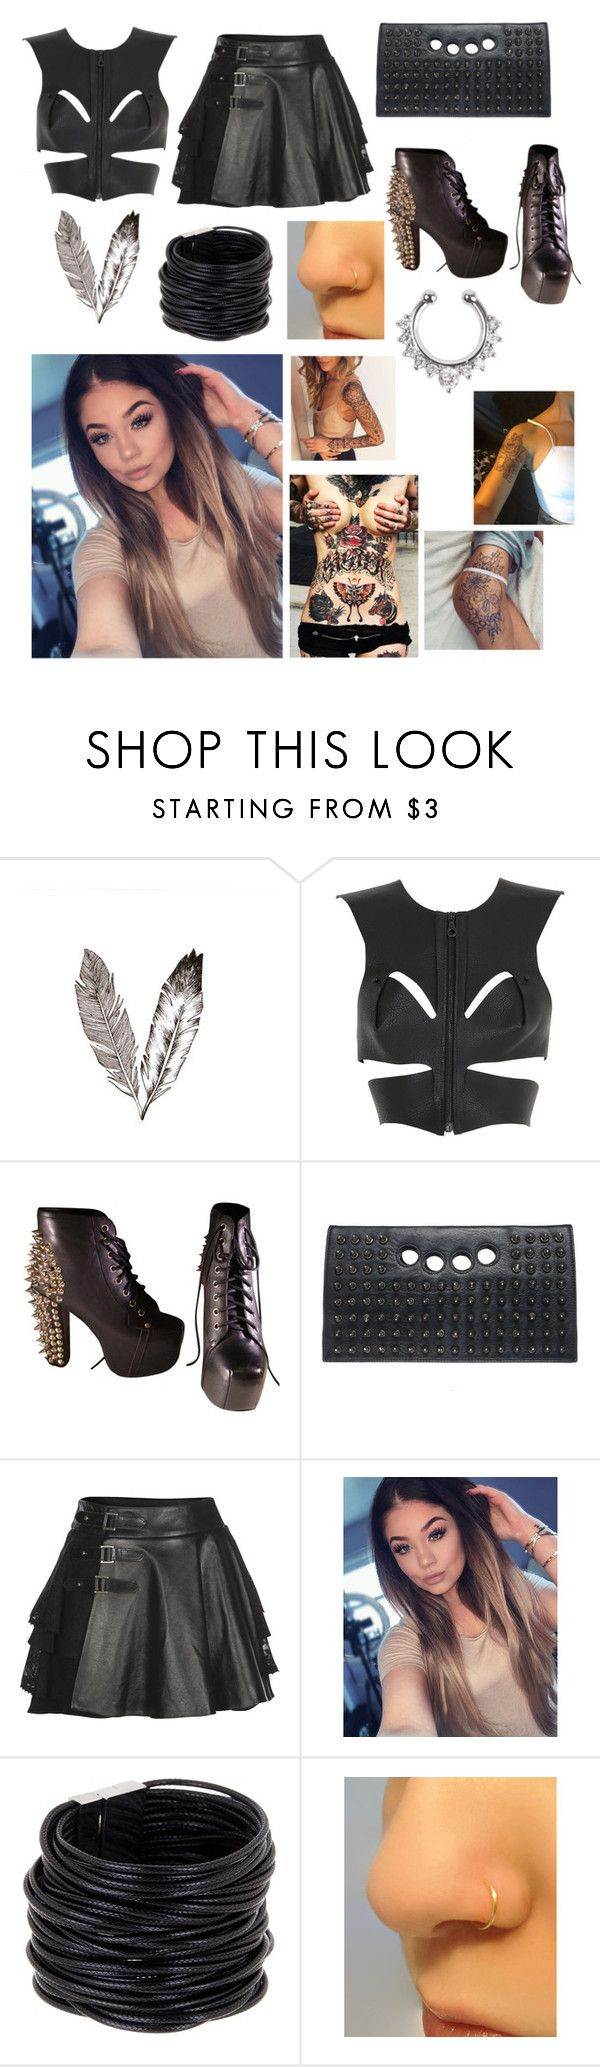 """Untitled #2060"" by beau-4-ever ❤ liked on Polyvore featuring Fleet Ilya, Jeffrey Campbell, RK New York, Mairi Mcdonald and Saachi"